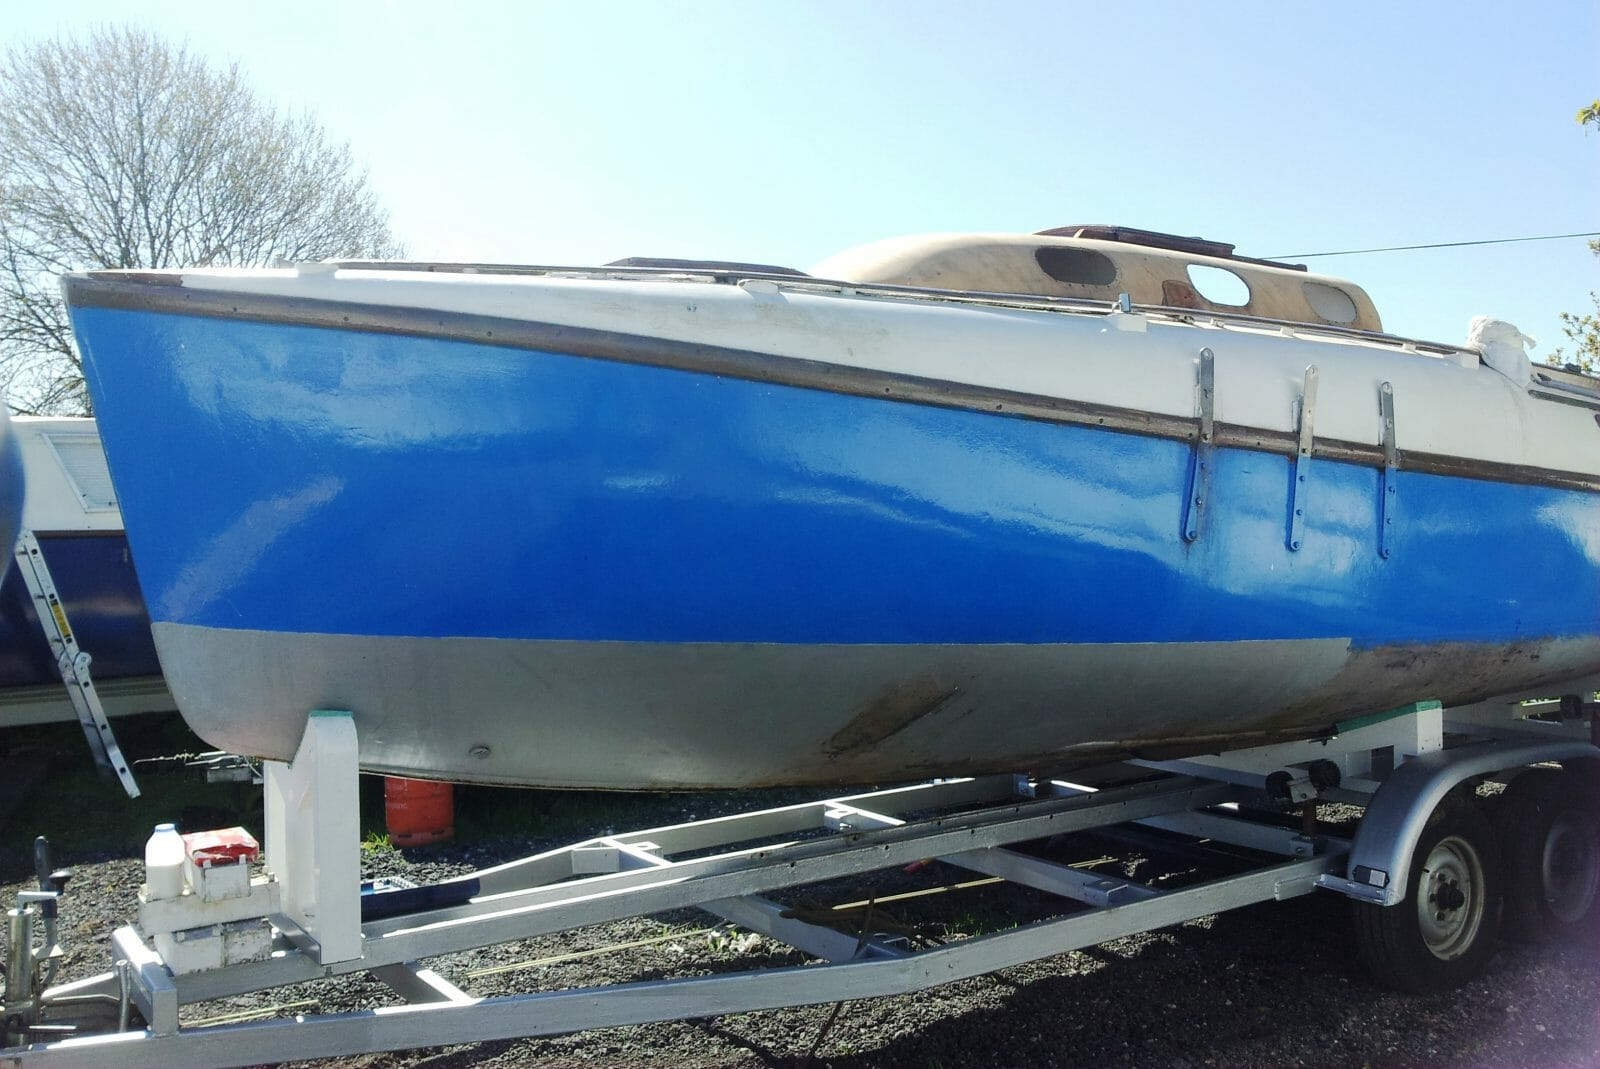 A115 Mara For Sale - £800